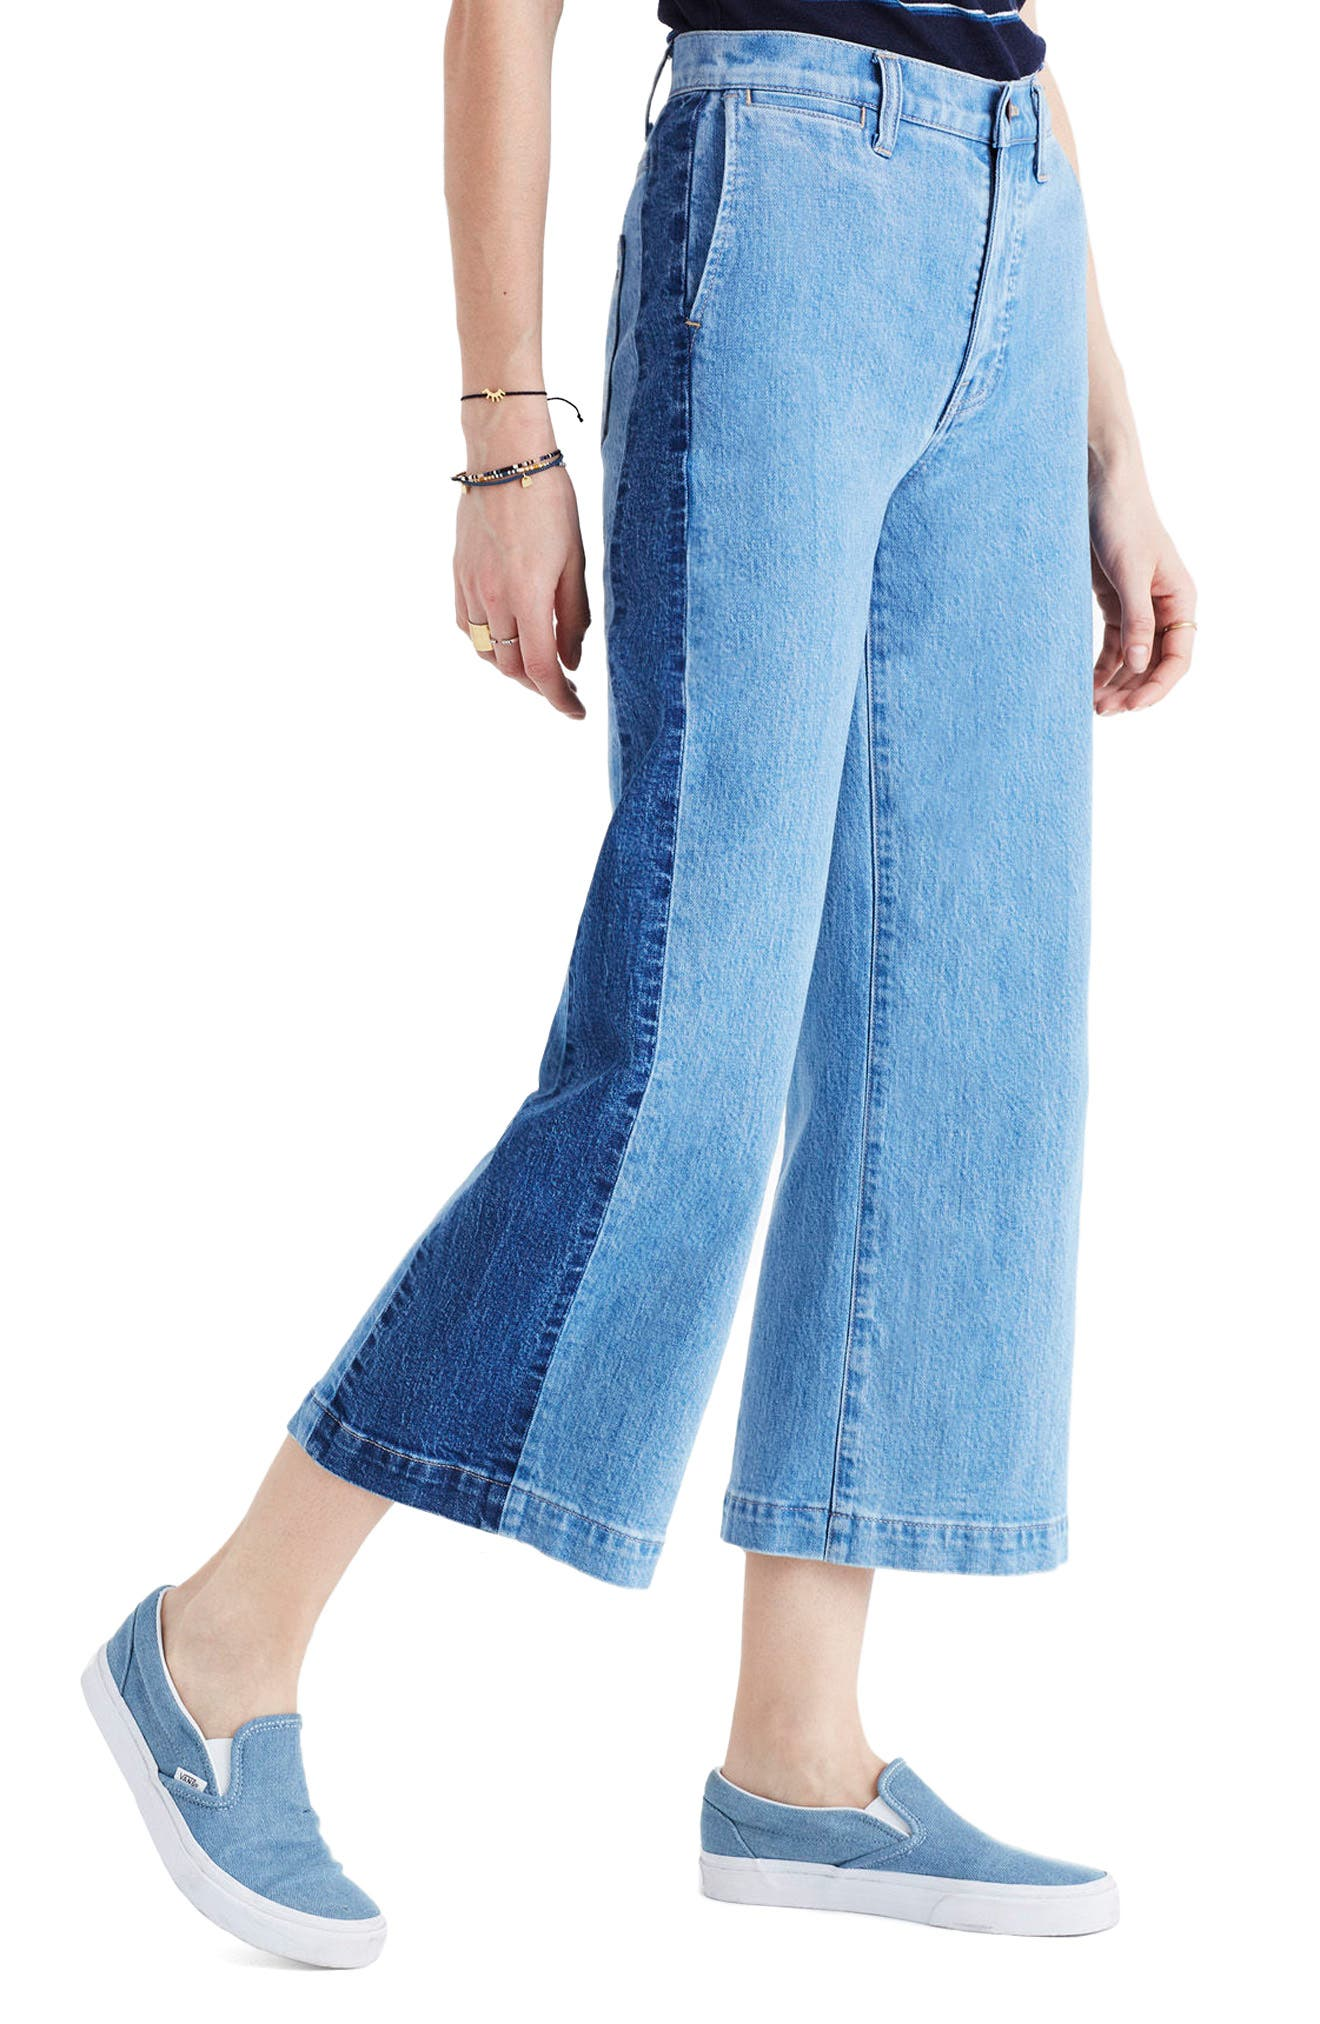 Alternate Image 1 Selected - Madewell High Waist Crop Wide Leg Jeans (Ellendale Wash)